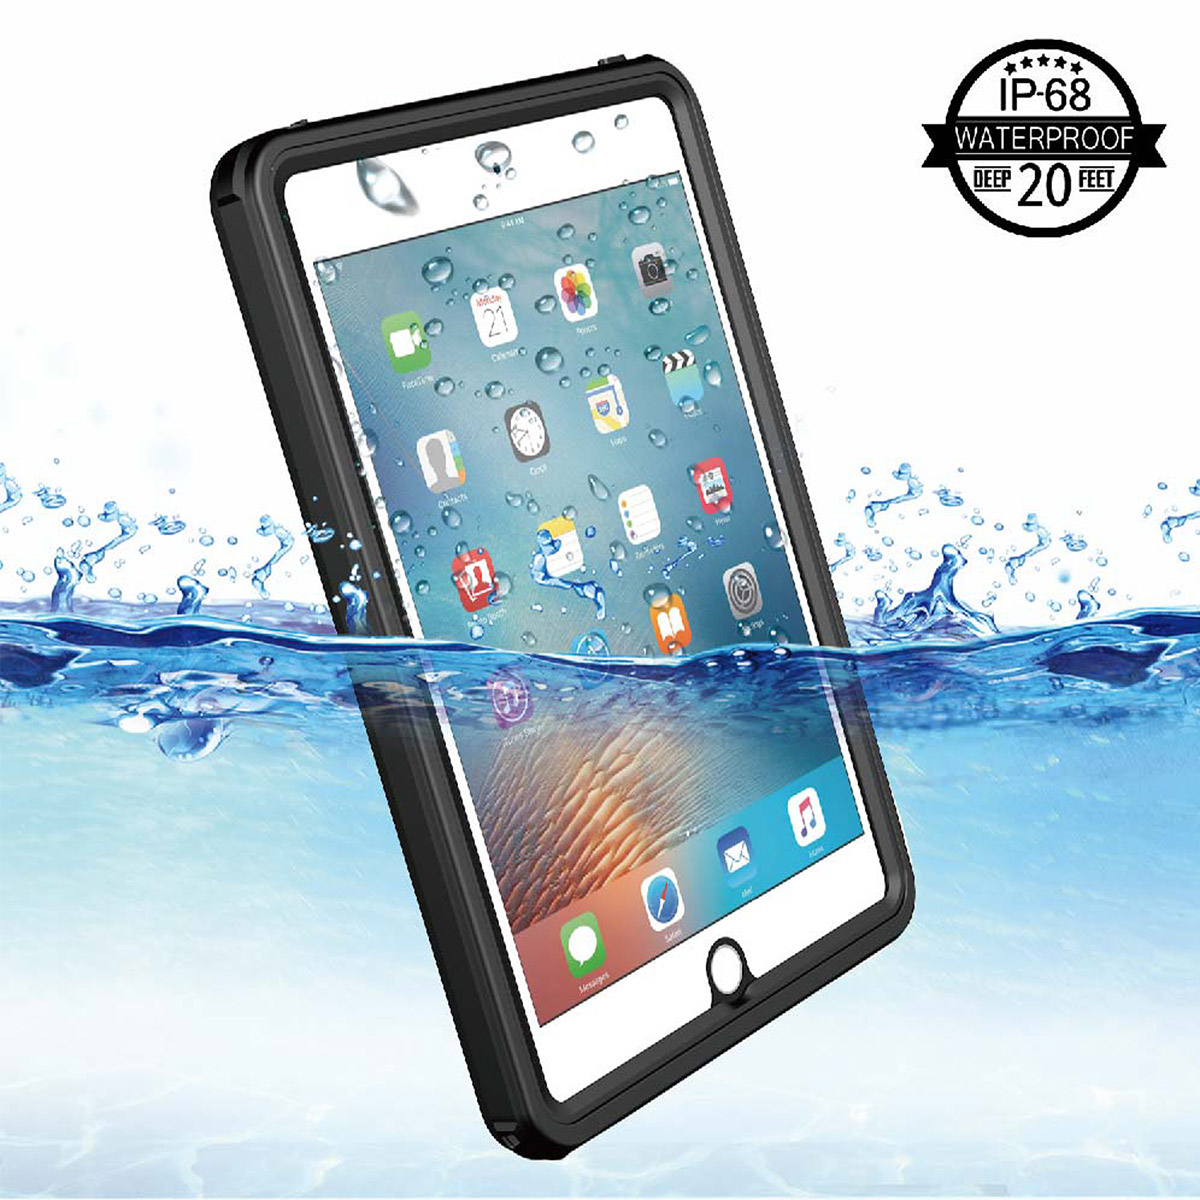 For iPad Mini 4 Waterproof Tablet Case Shockproof Dust Proof Tablet Cover with Adjustable Tablet Stand Built in Screen Protector-in Tablets & e-Books Case from Computer & Office